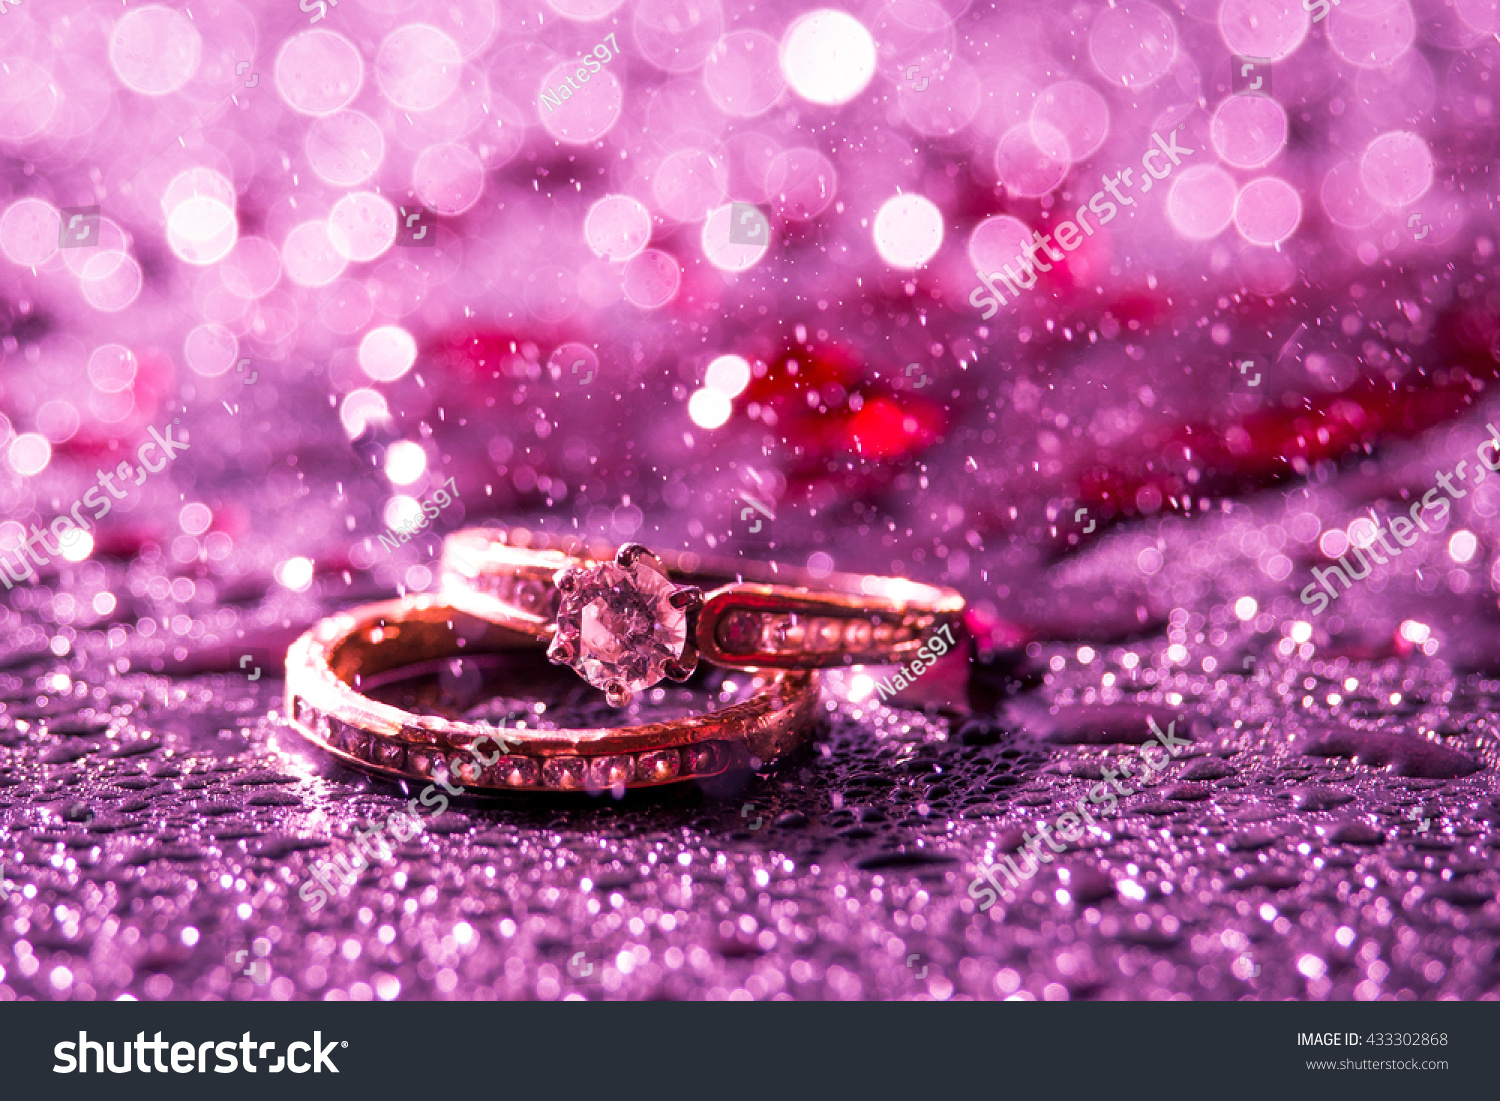 Wedding Engagement Rings Blood Red Background Stock Photo (Edit Now ...